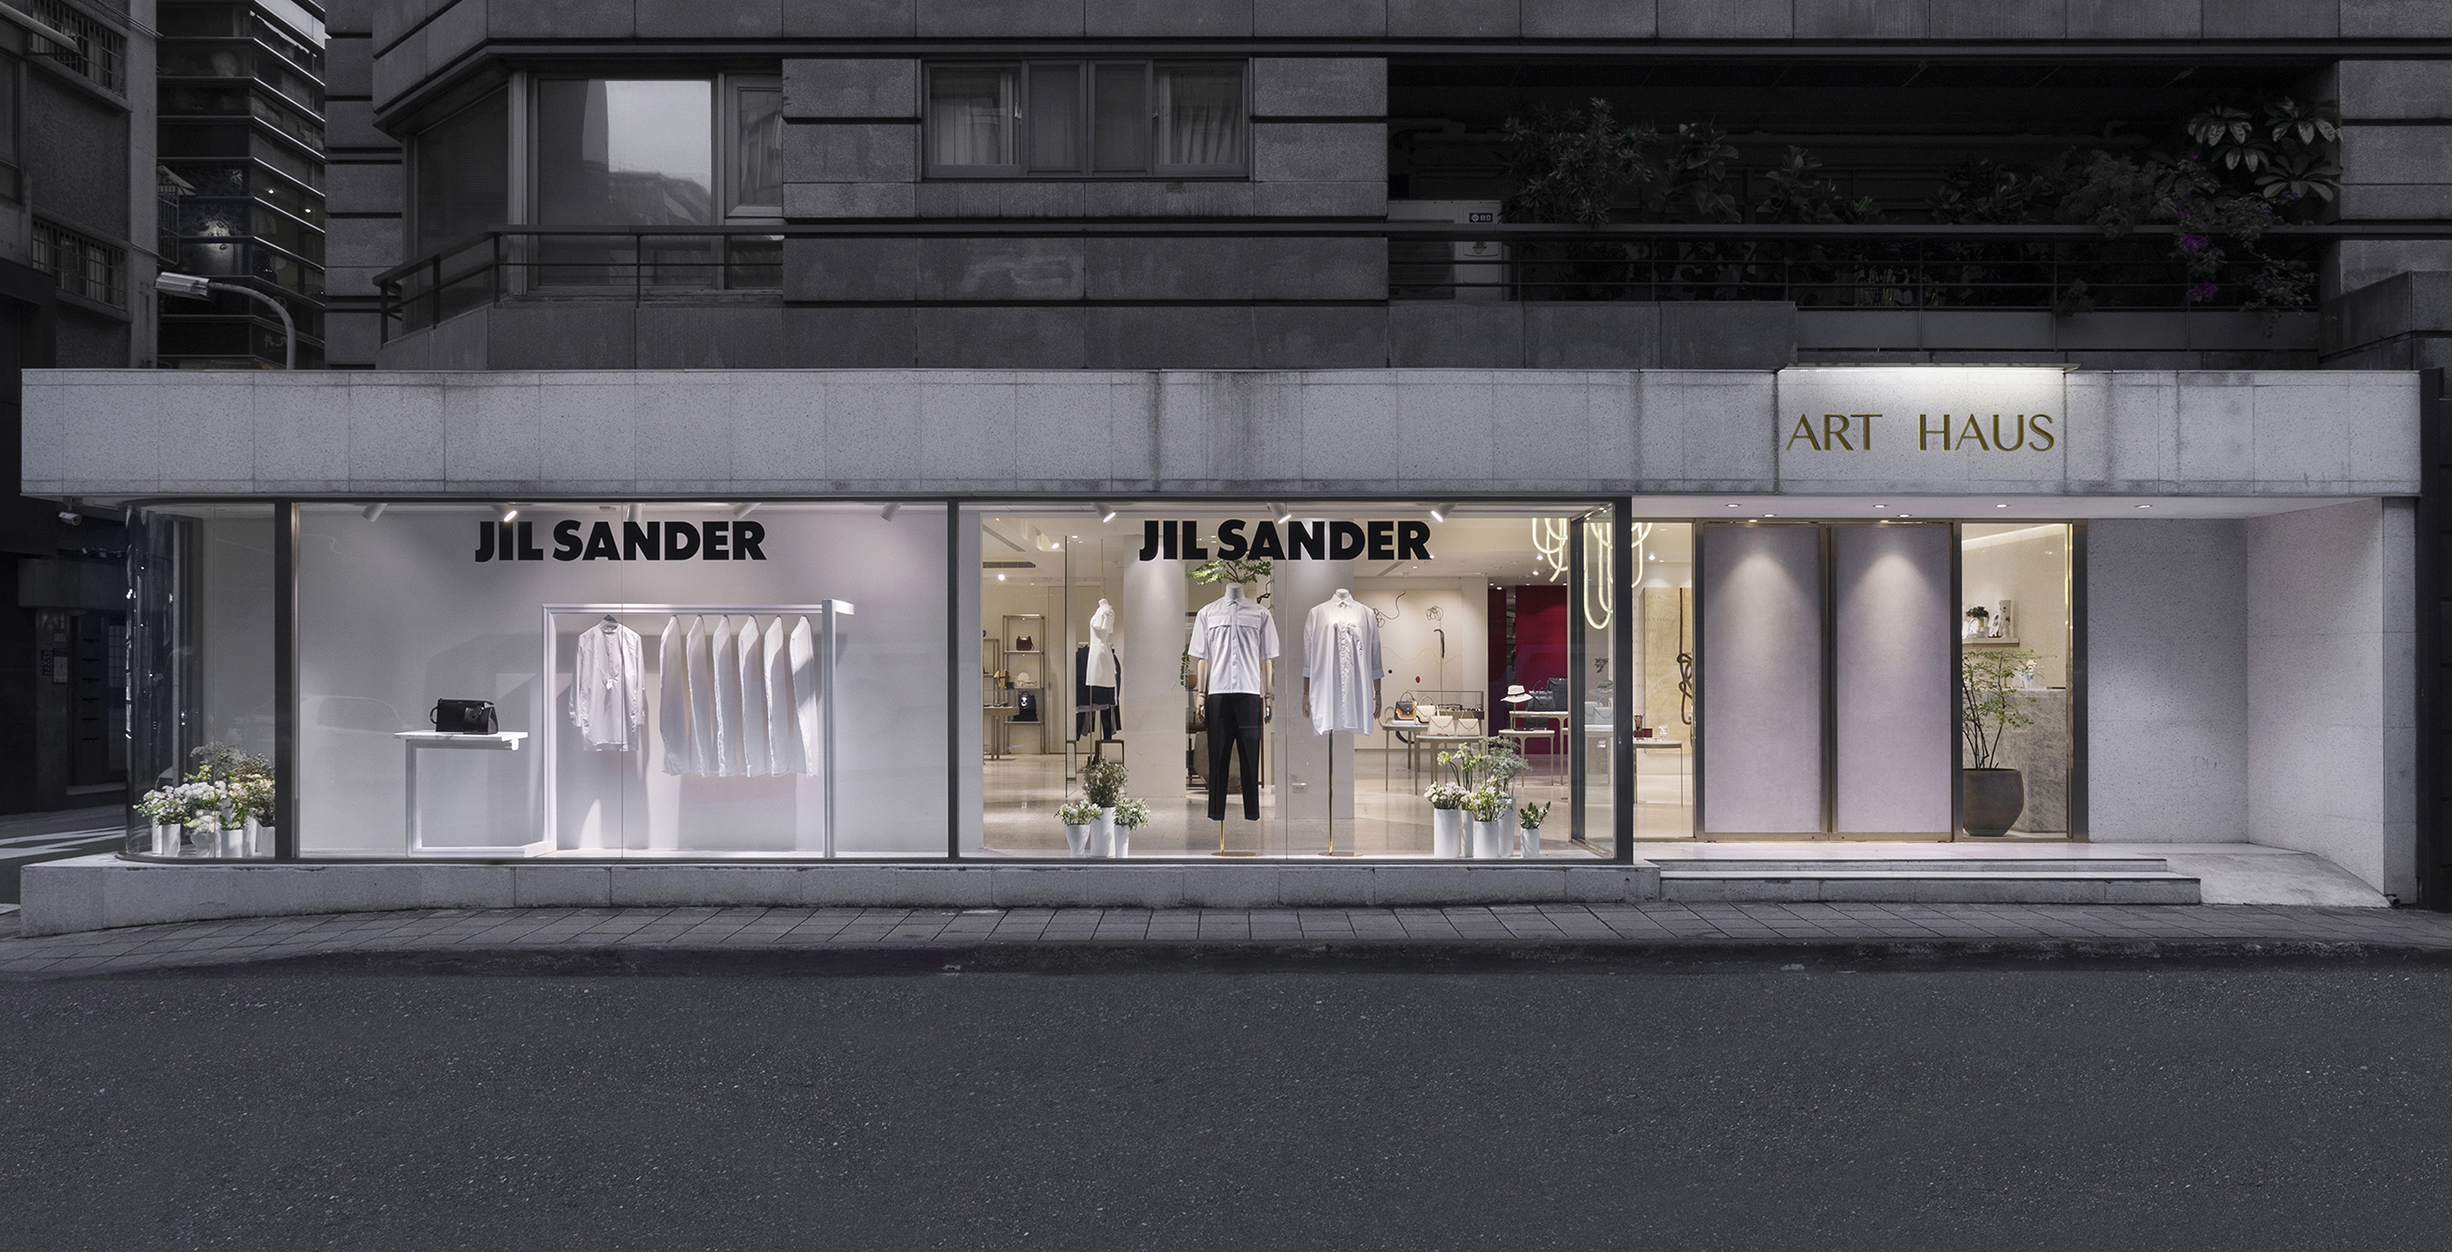 ART HAUS_JIL SANDER WINDOW DISPLAY_01.jpg